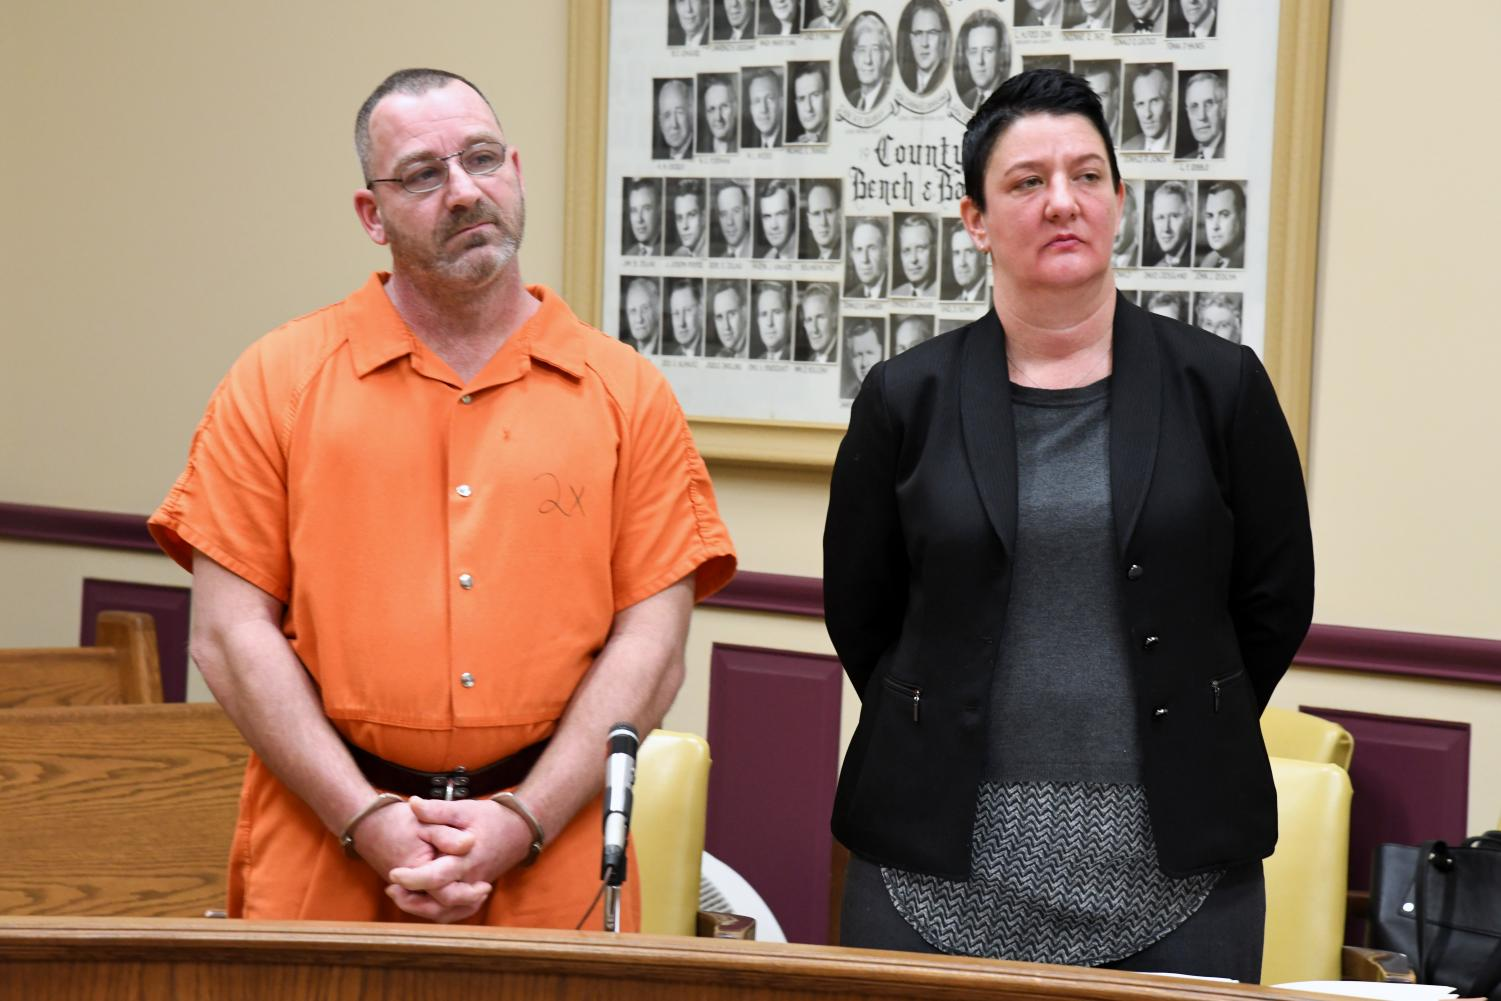 Travis Pletcher (left) stands with his defense attorney Nicole Churchill (right) in the Muskingum County Court of Common Pleas to reverse his former plea of not guilty.